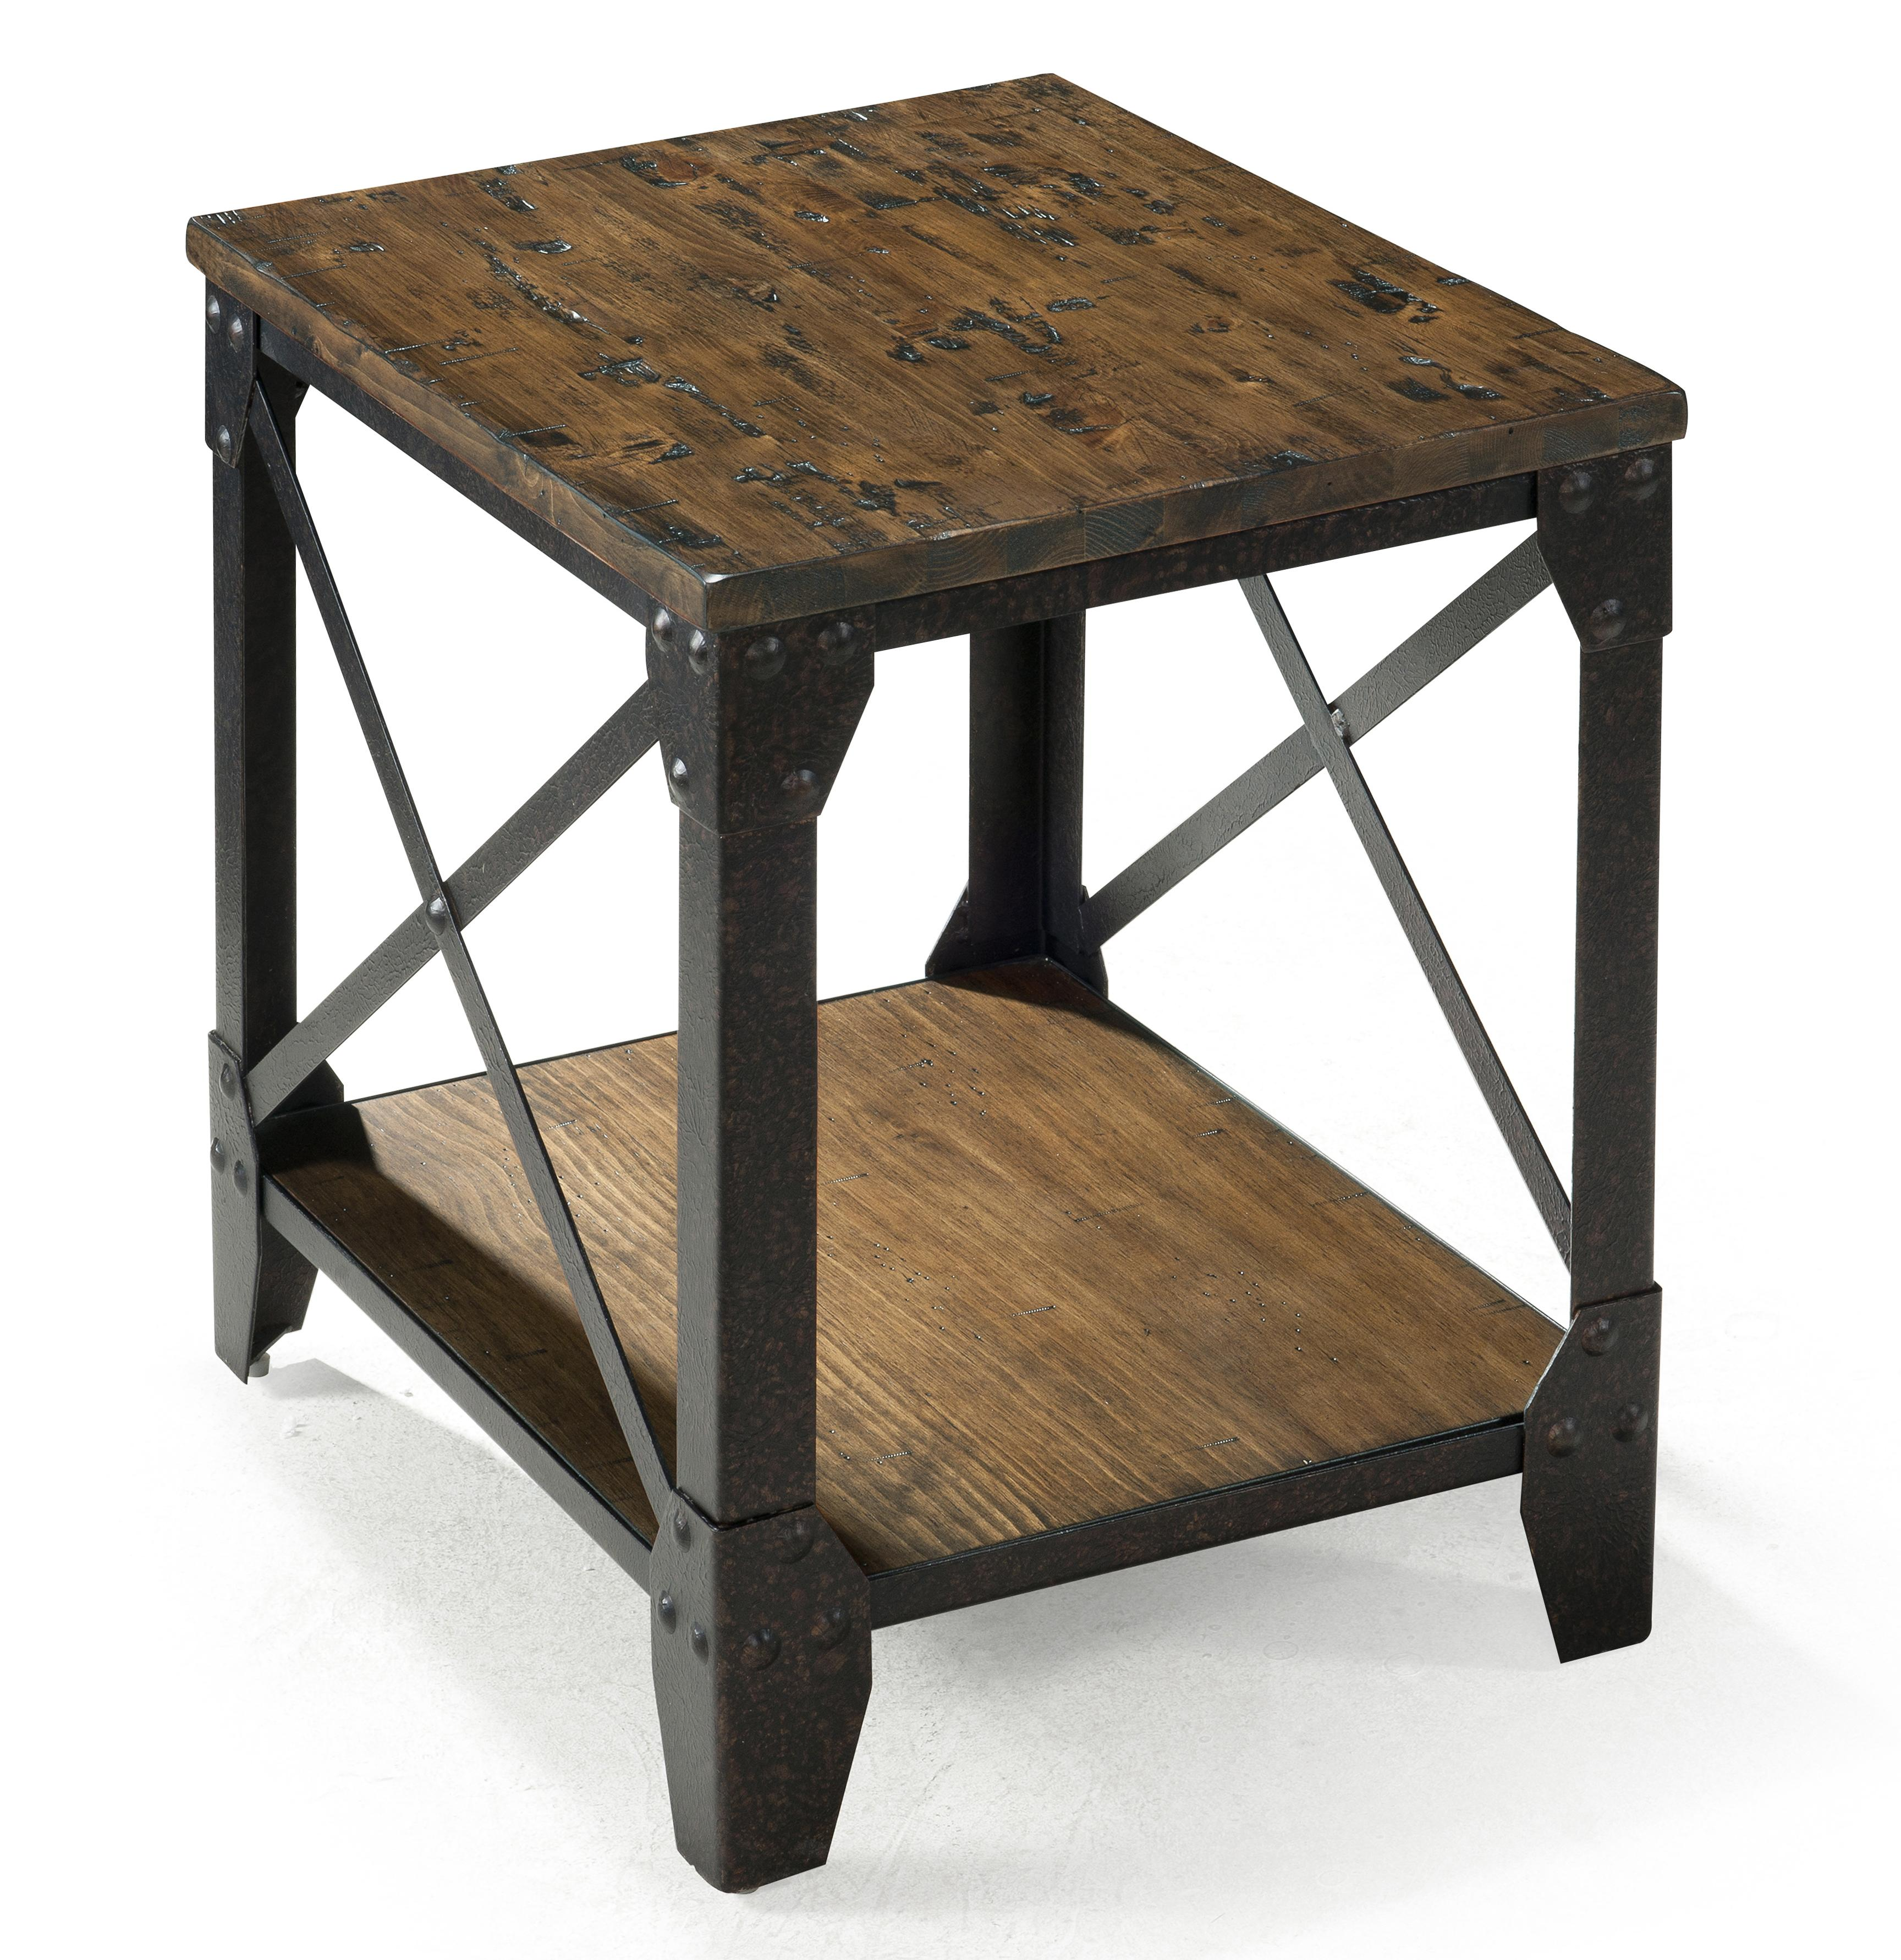 wonderful rustic end tables square shape metal frame and stretchersmaterial pine wood top shelf black oak finish accent table full size peva tablecloth set pier one imports